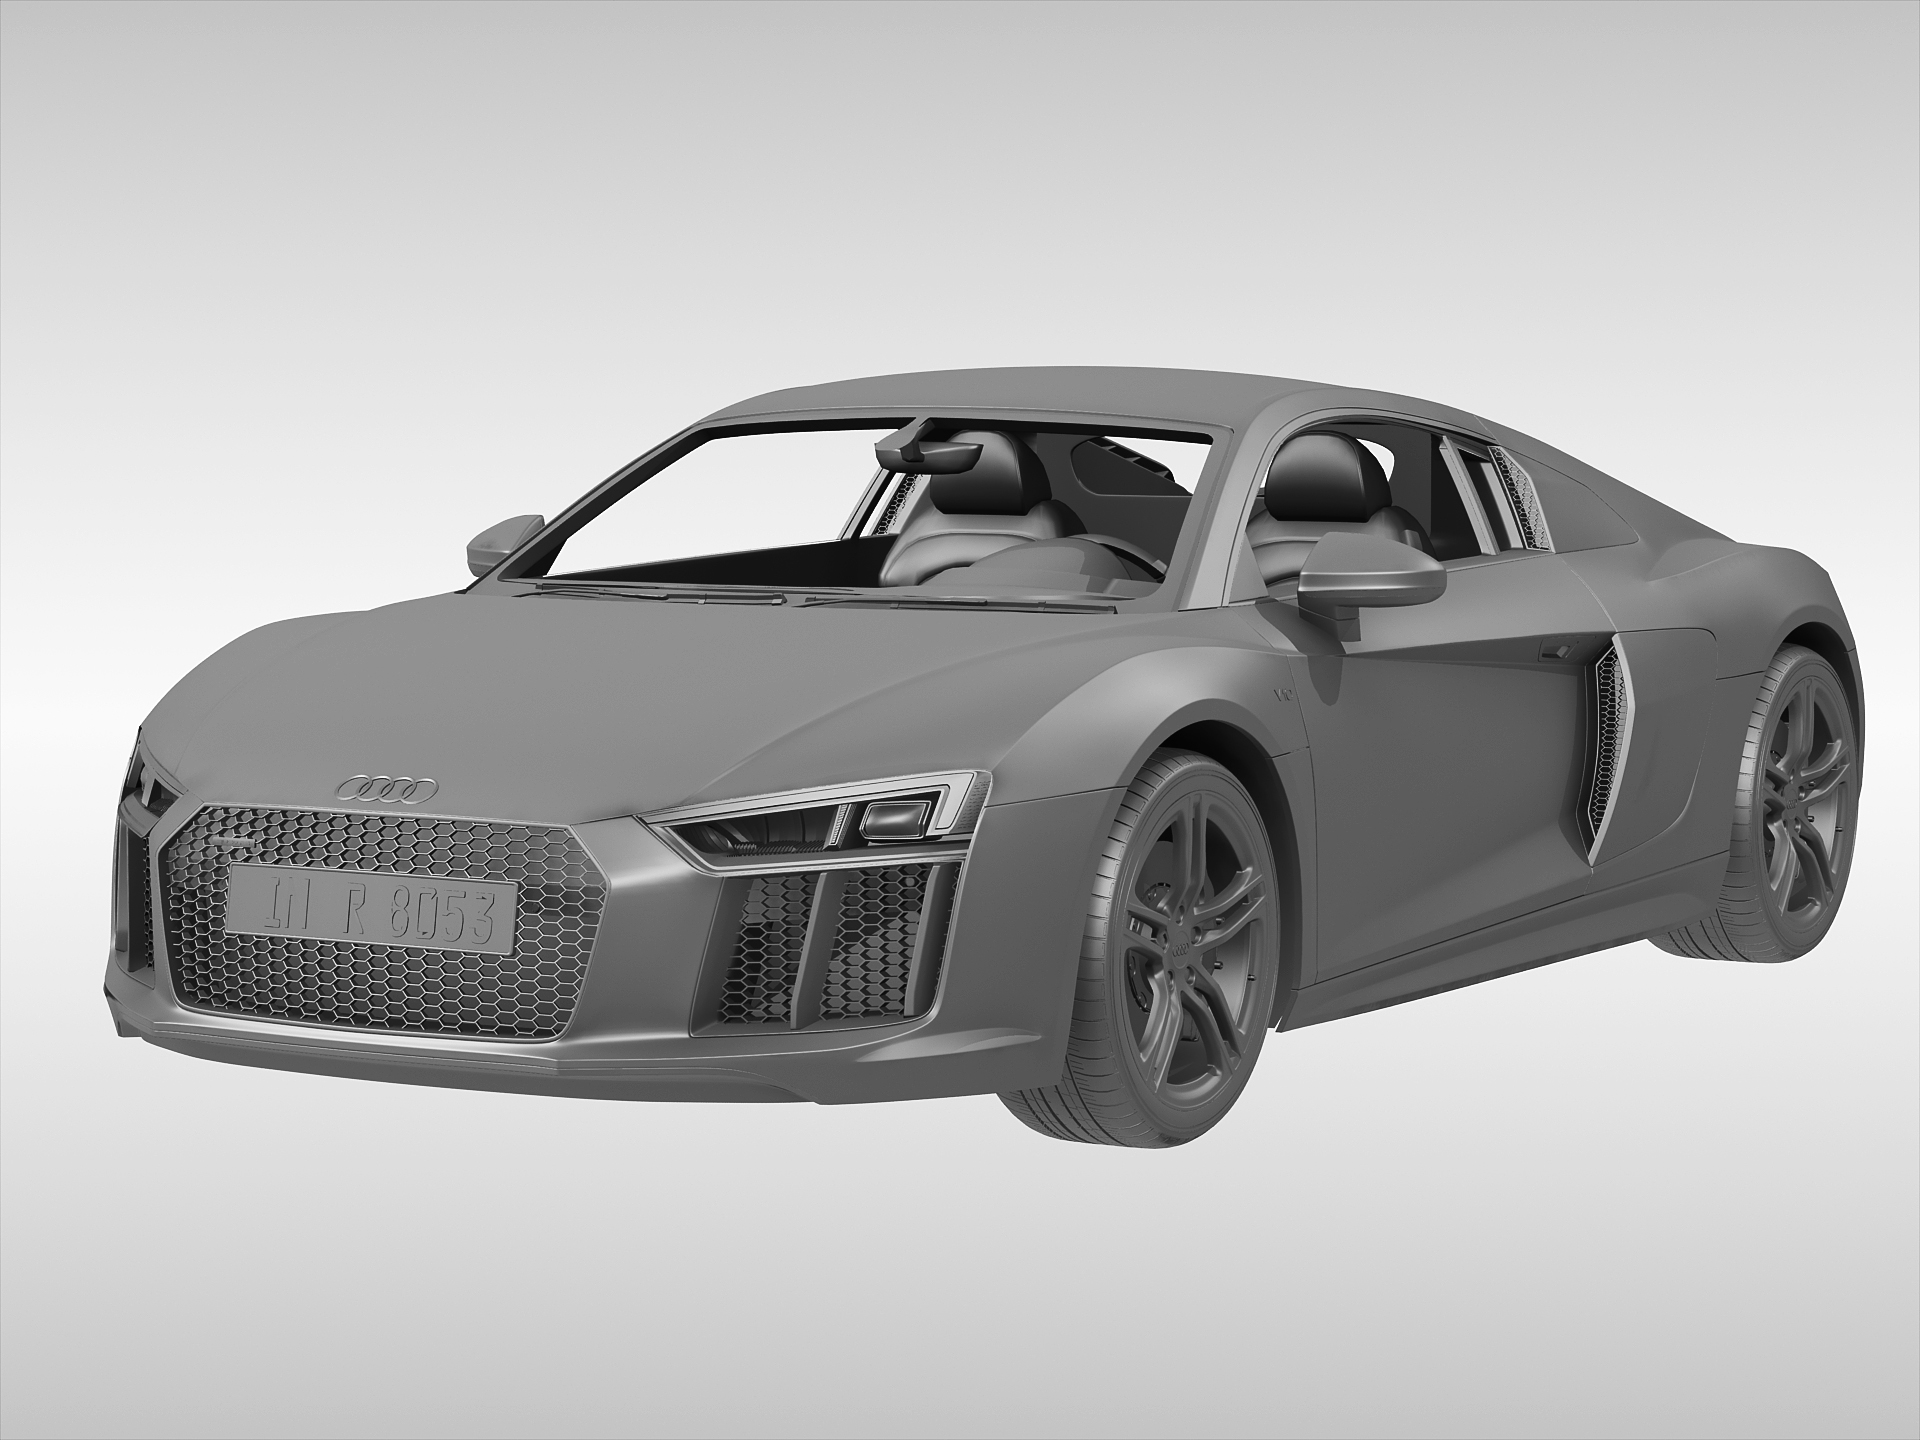 audi r8 v10 coupe 2016 3d model. Black Bedroom Furniture Sets. Home Design Ideas